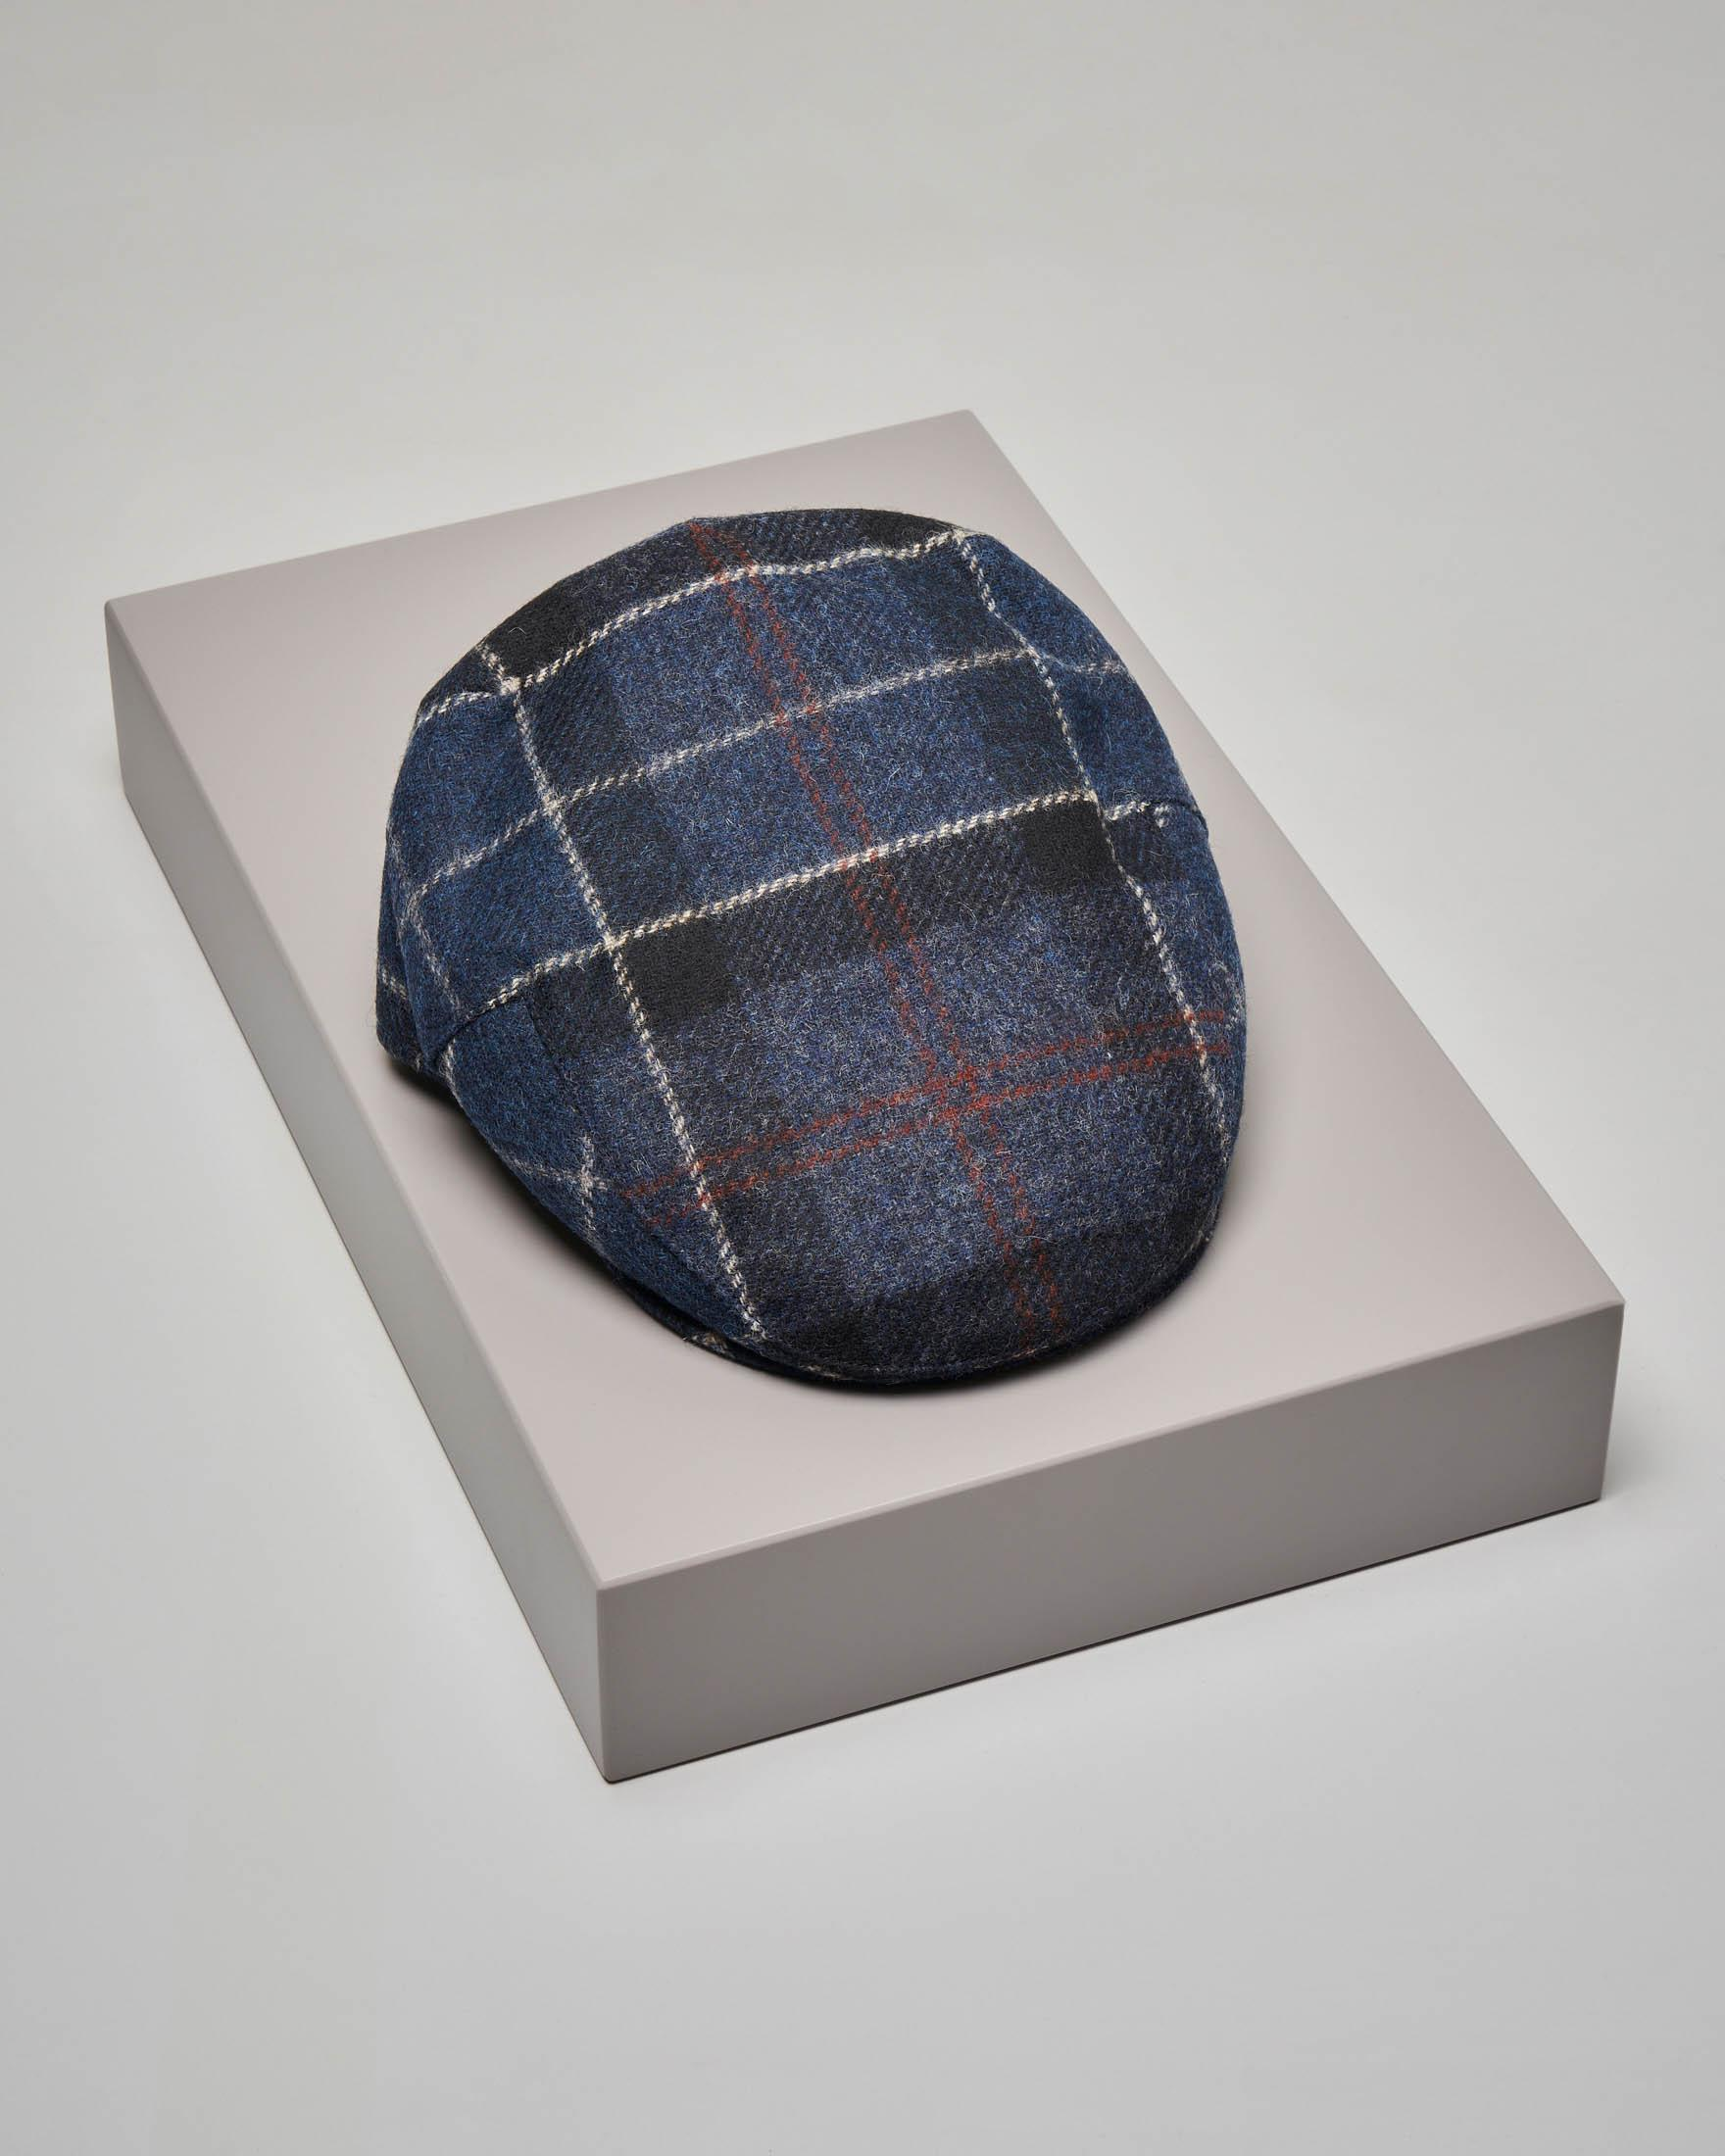 Coppola tartan check blu e nero in pura lana